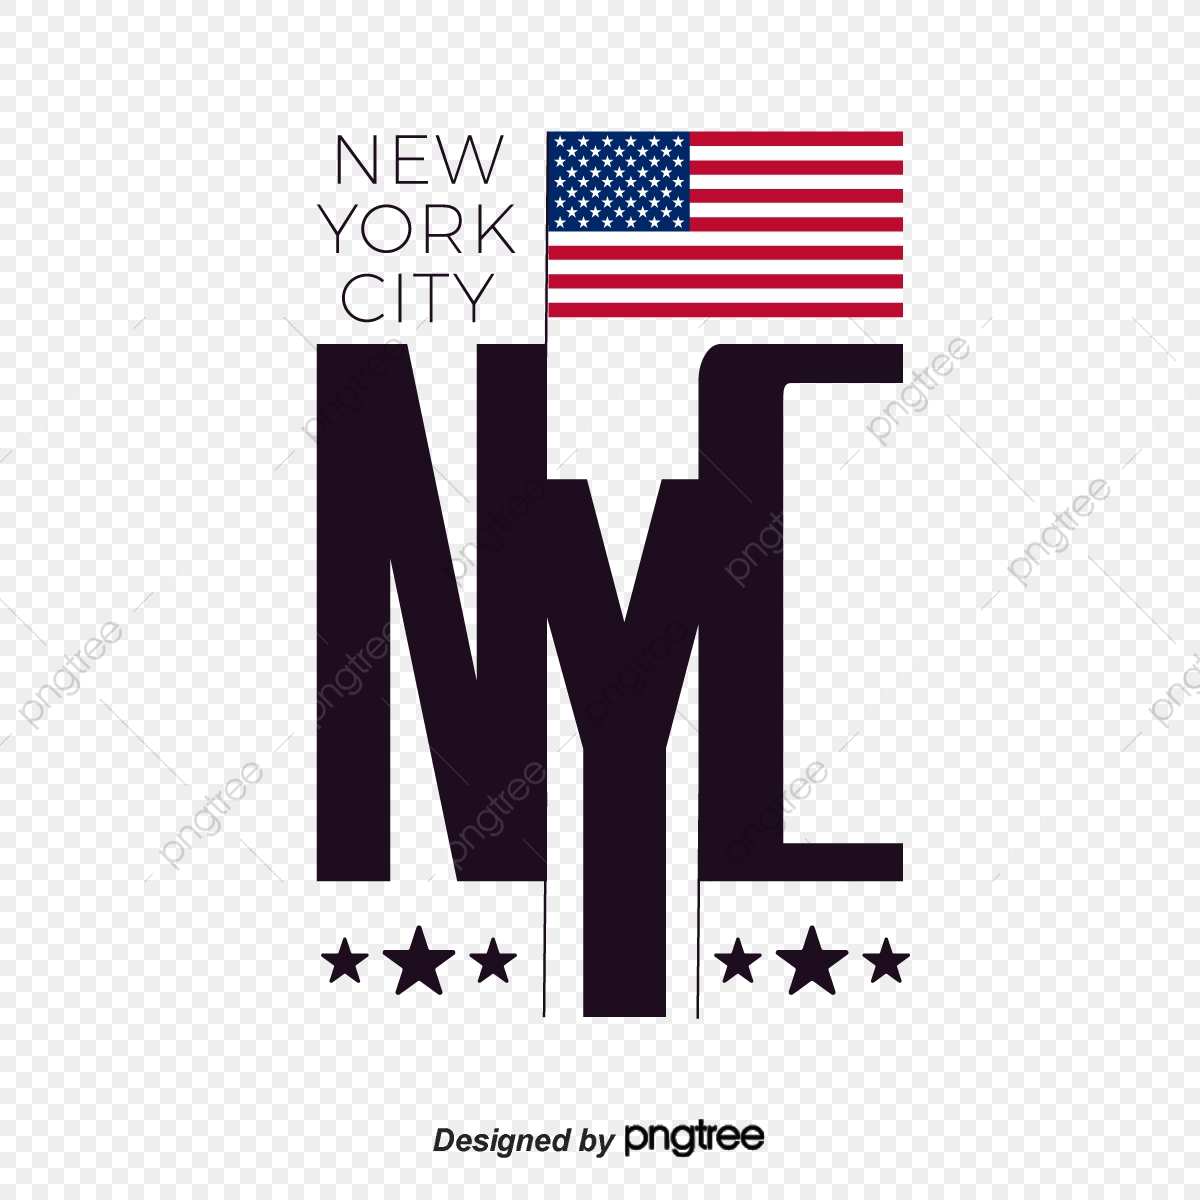 New York Png Images Vector And Psd Files Free Download On Pngtree